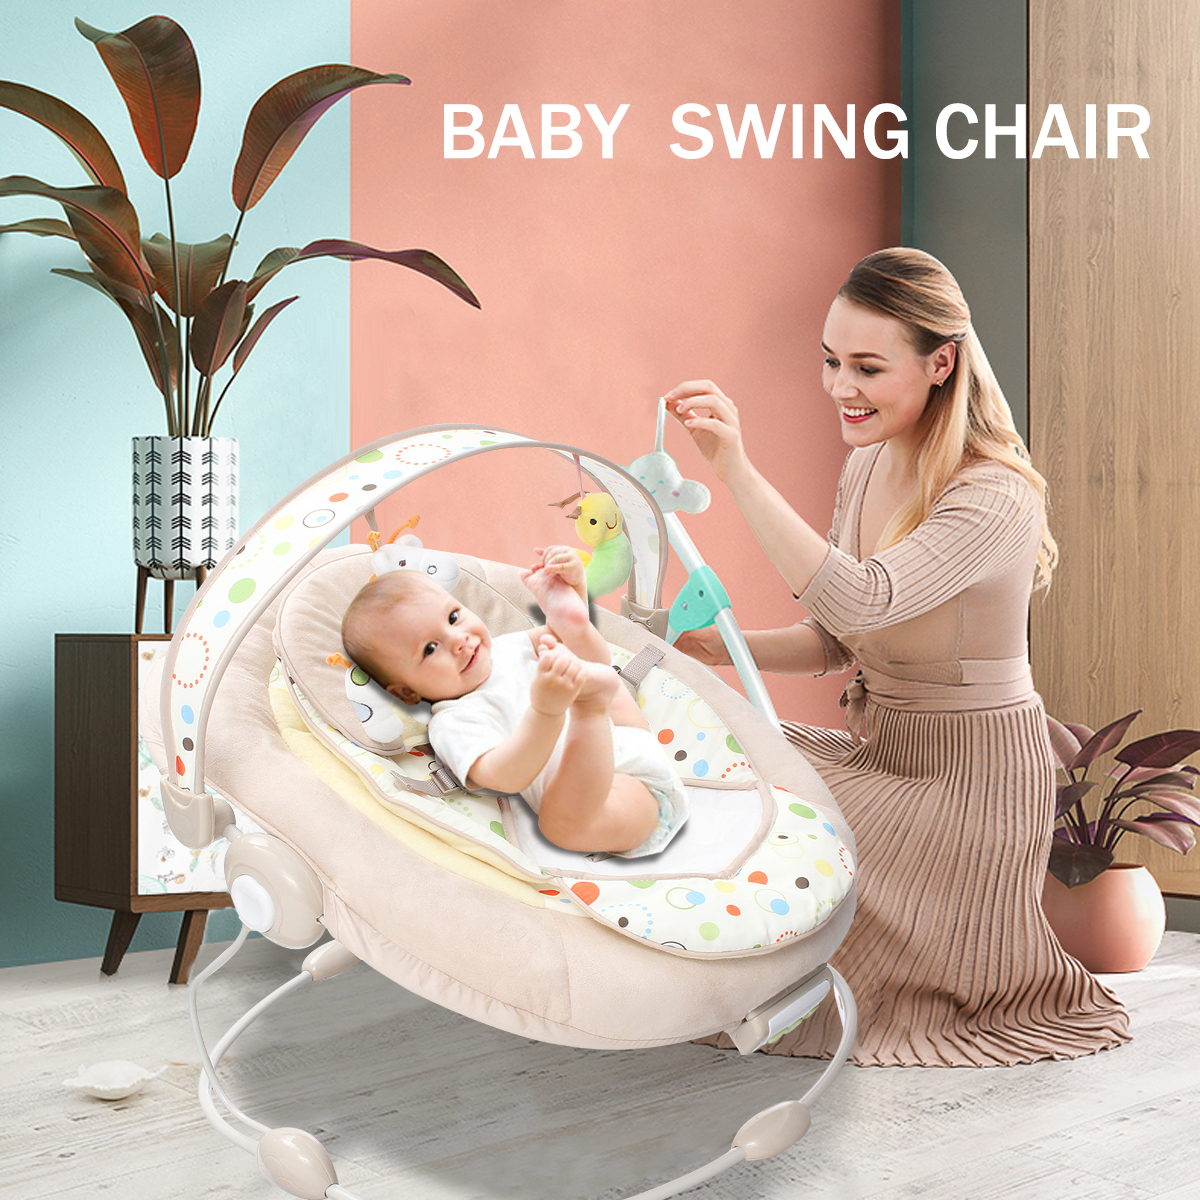 Baby Rocking Chair Musical Vibrating Rocking Chair Adjusting Shaker Cradle With Music Safe Baby Sleeping Basket Chair fashion baby bouncers swings foldable portable electric baby rocking chair with music safe baby sleeping basket